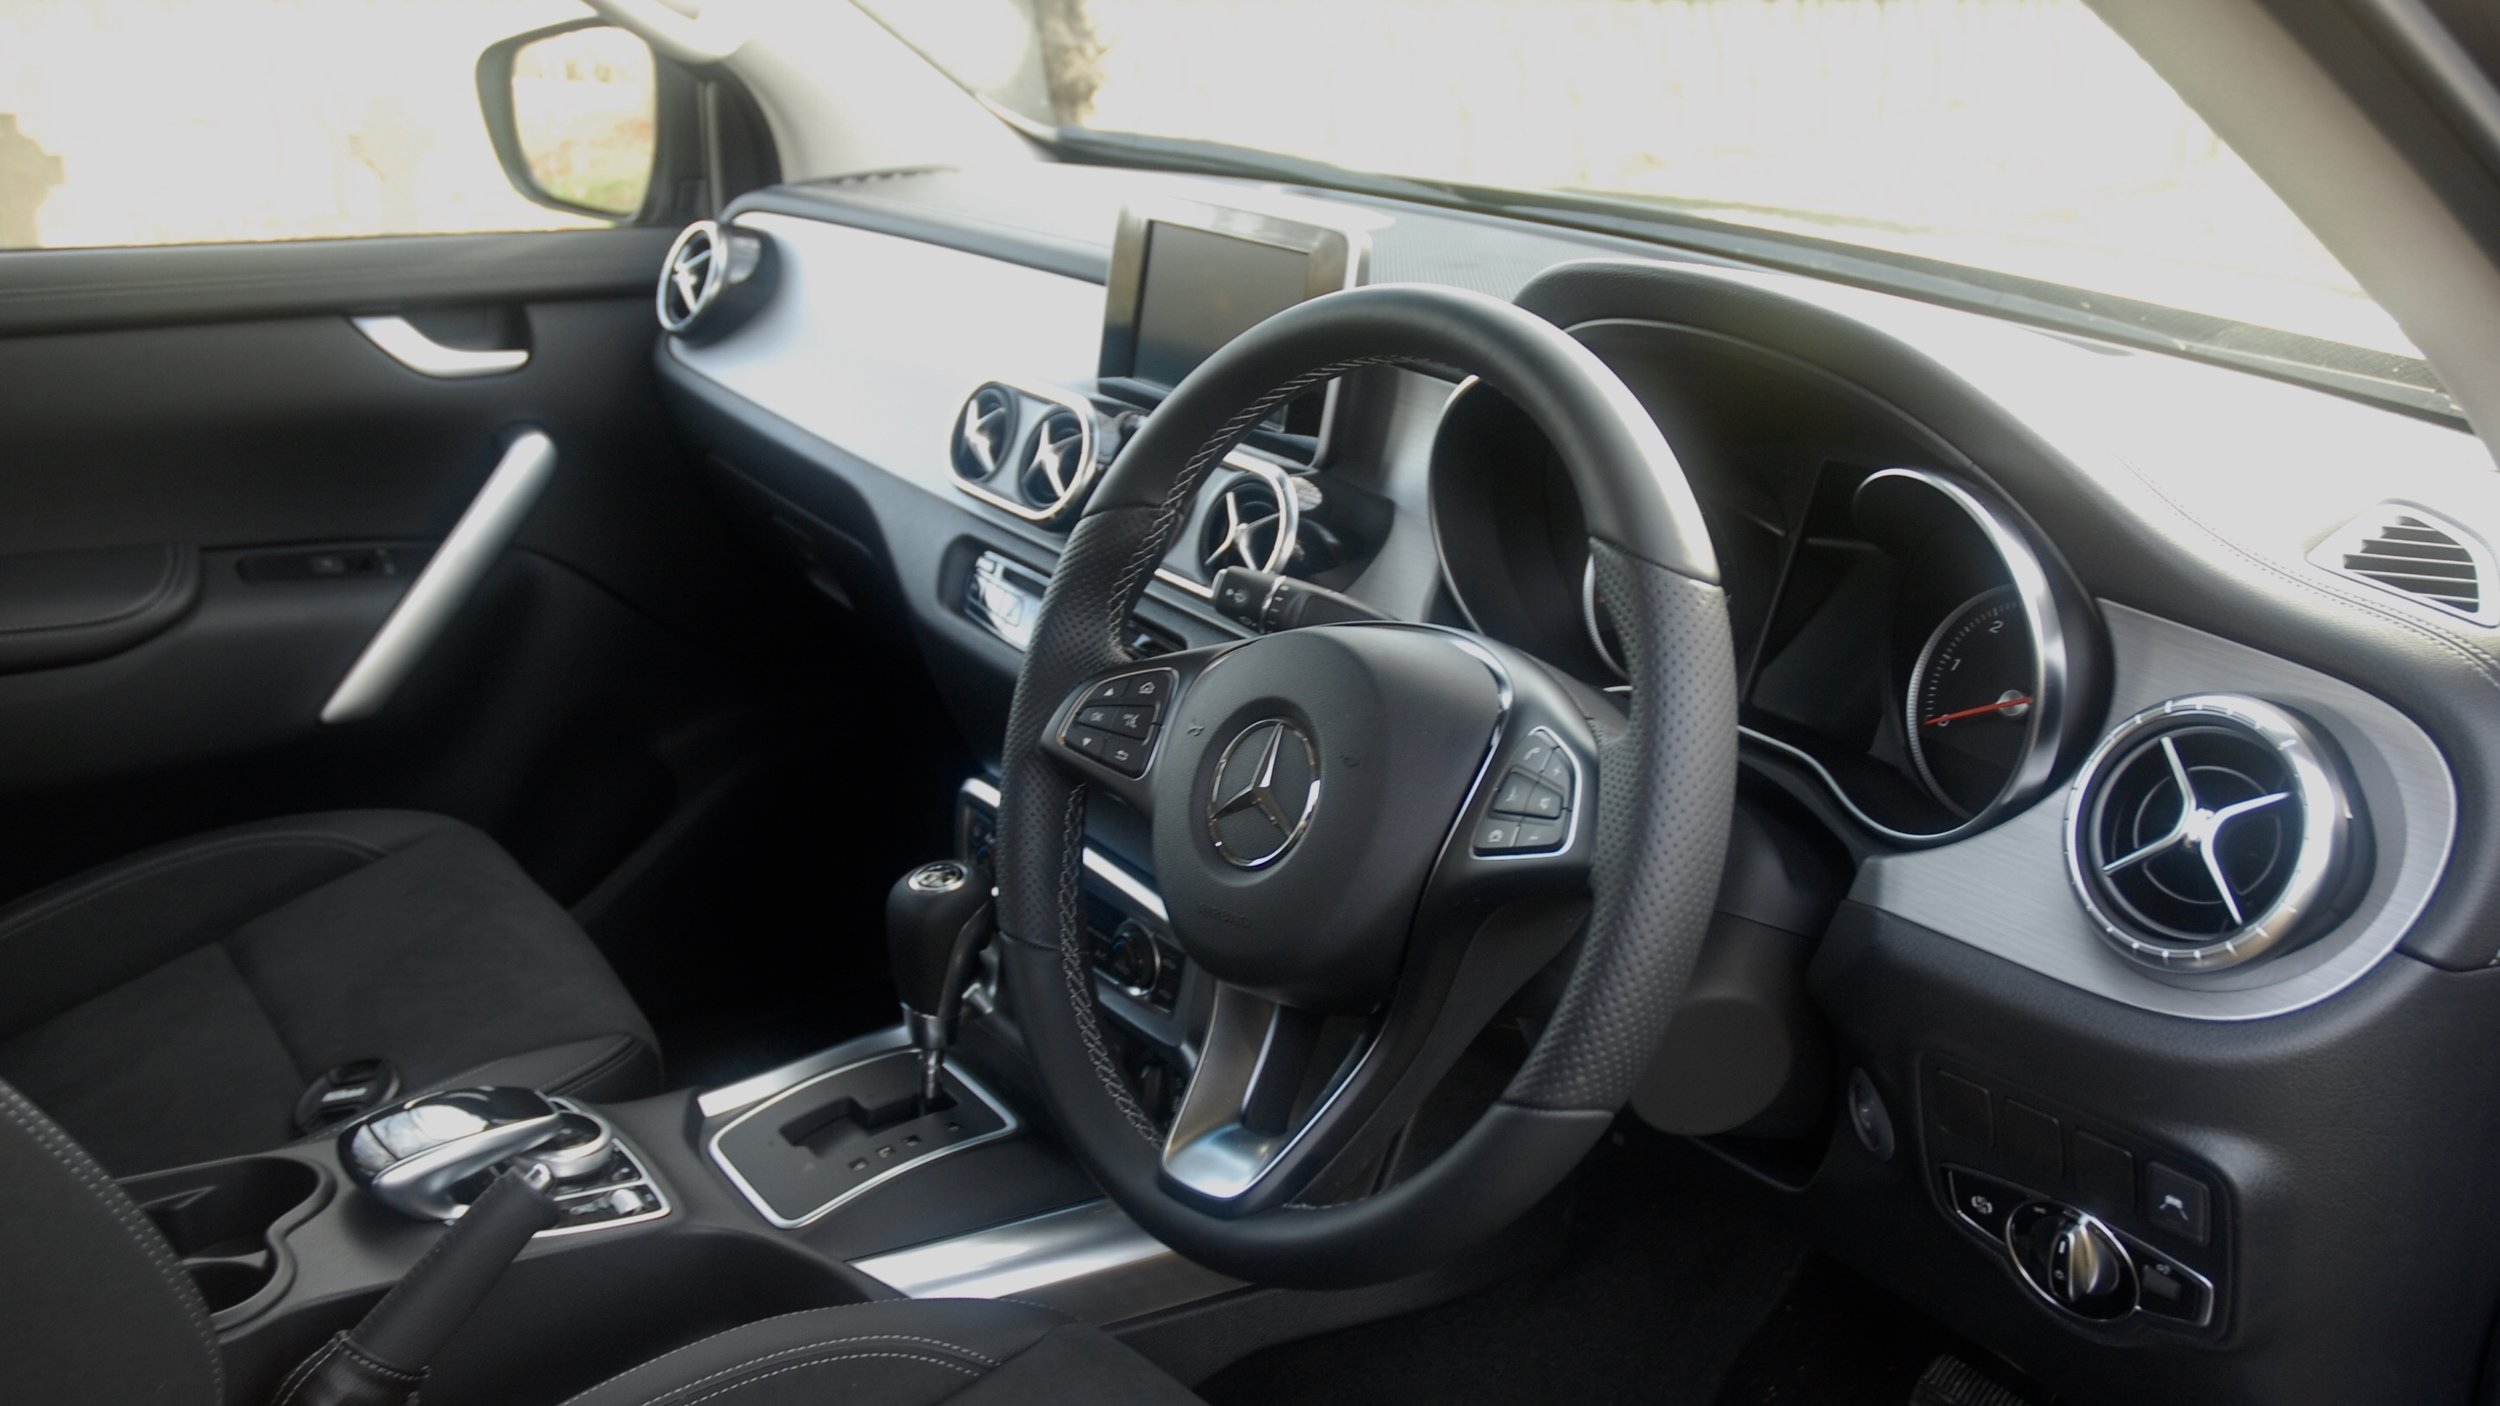 The best interior in the Pickup market. It exudes luxury.